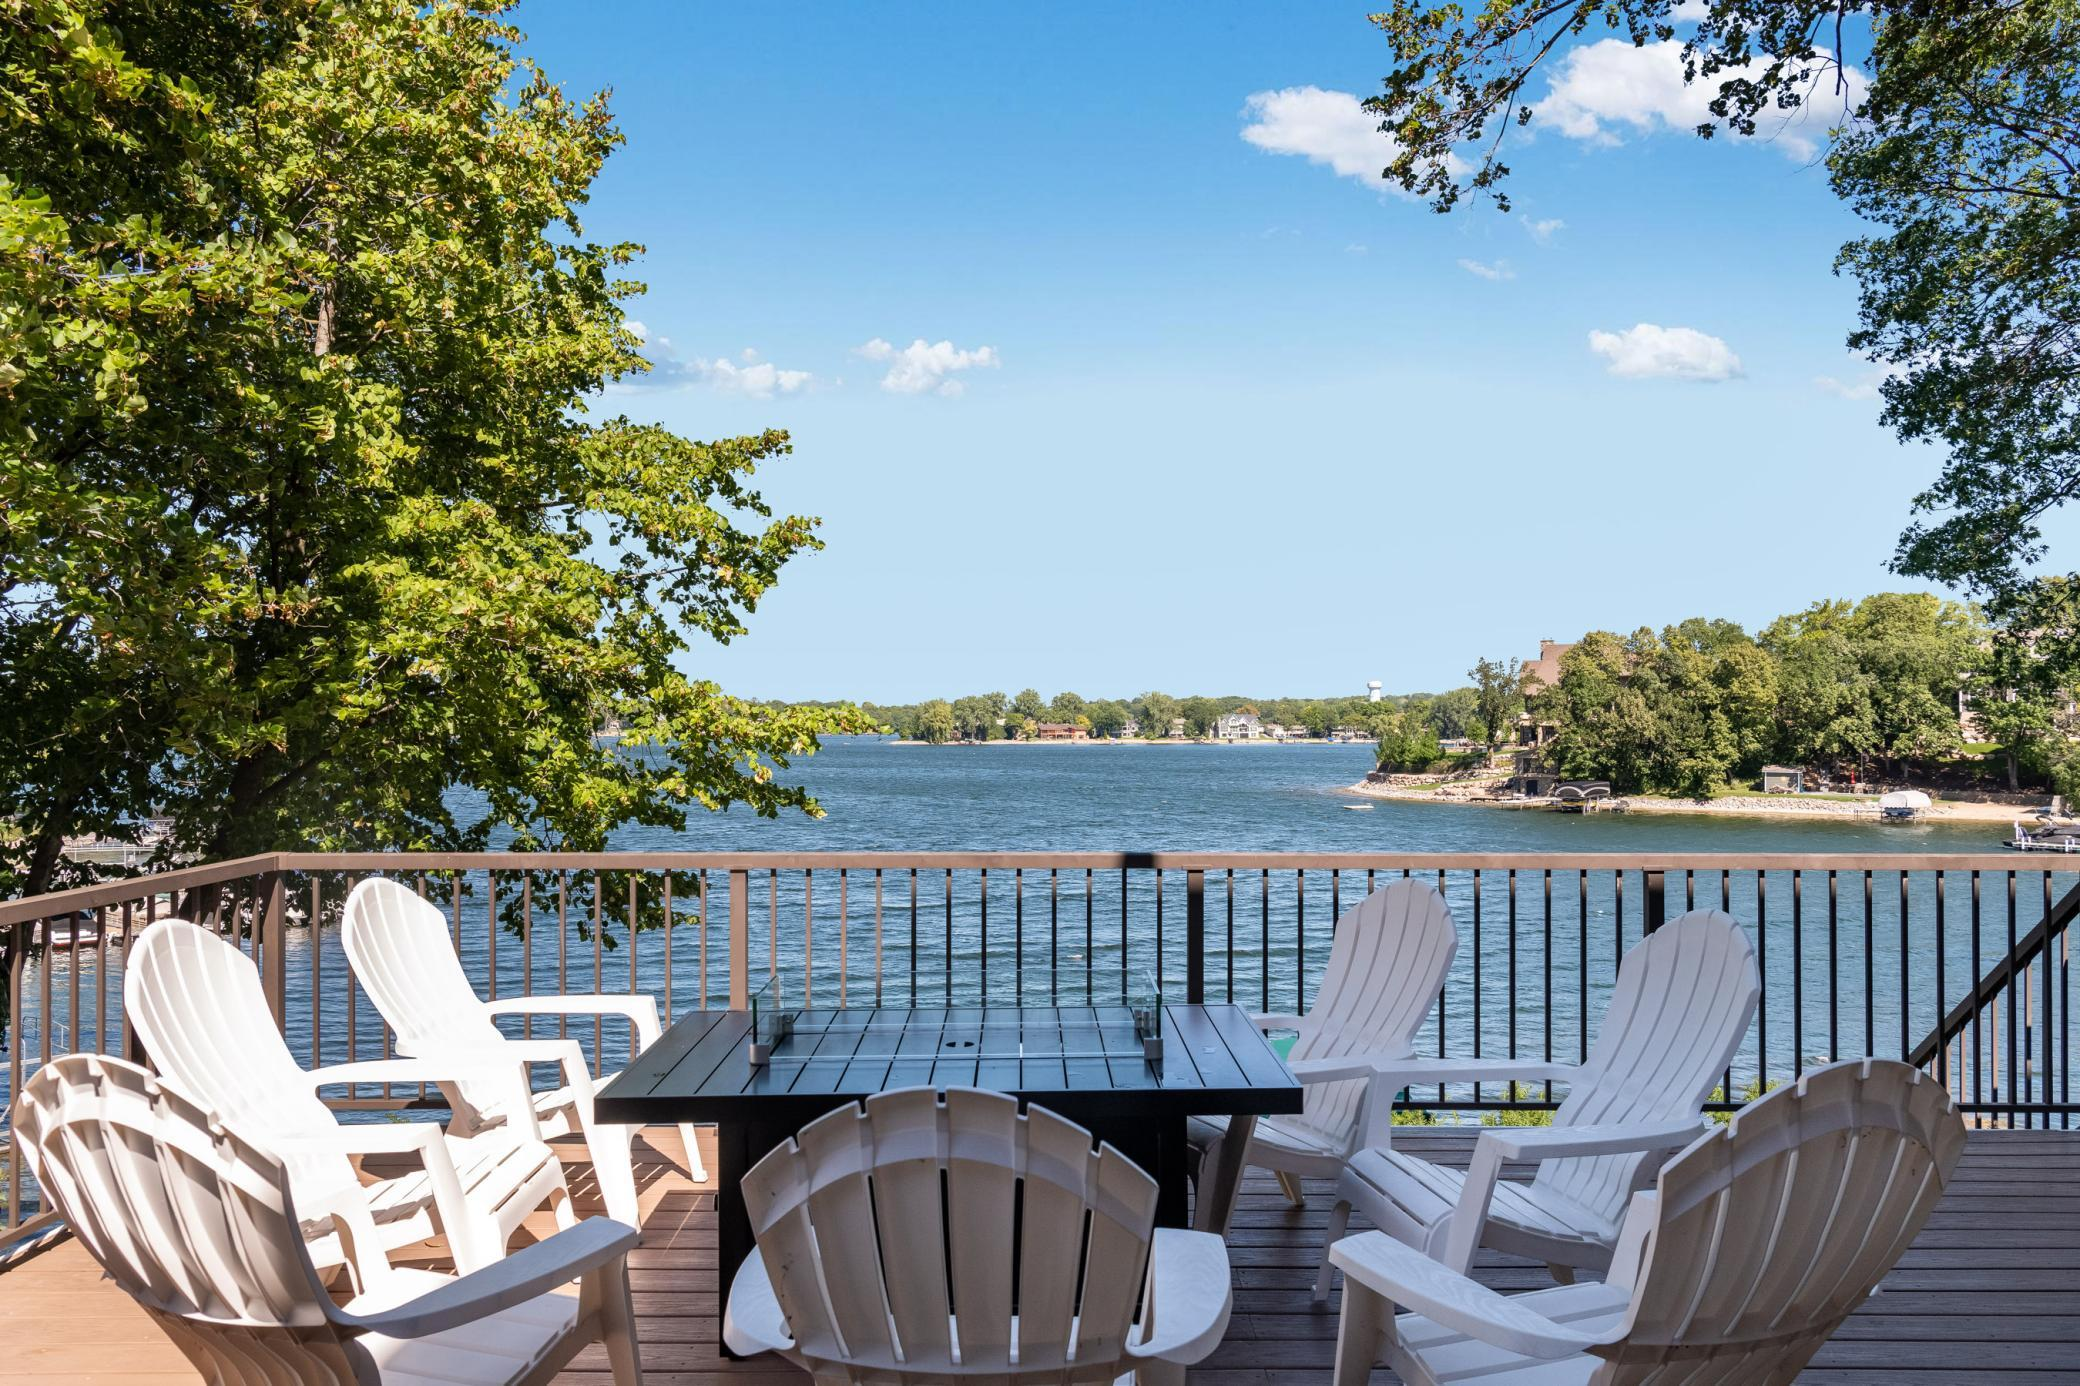 1st Add To Condon's Wooddale Real Estate Listings Main Image